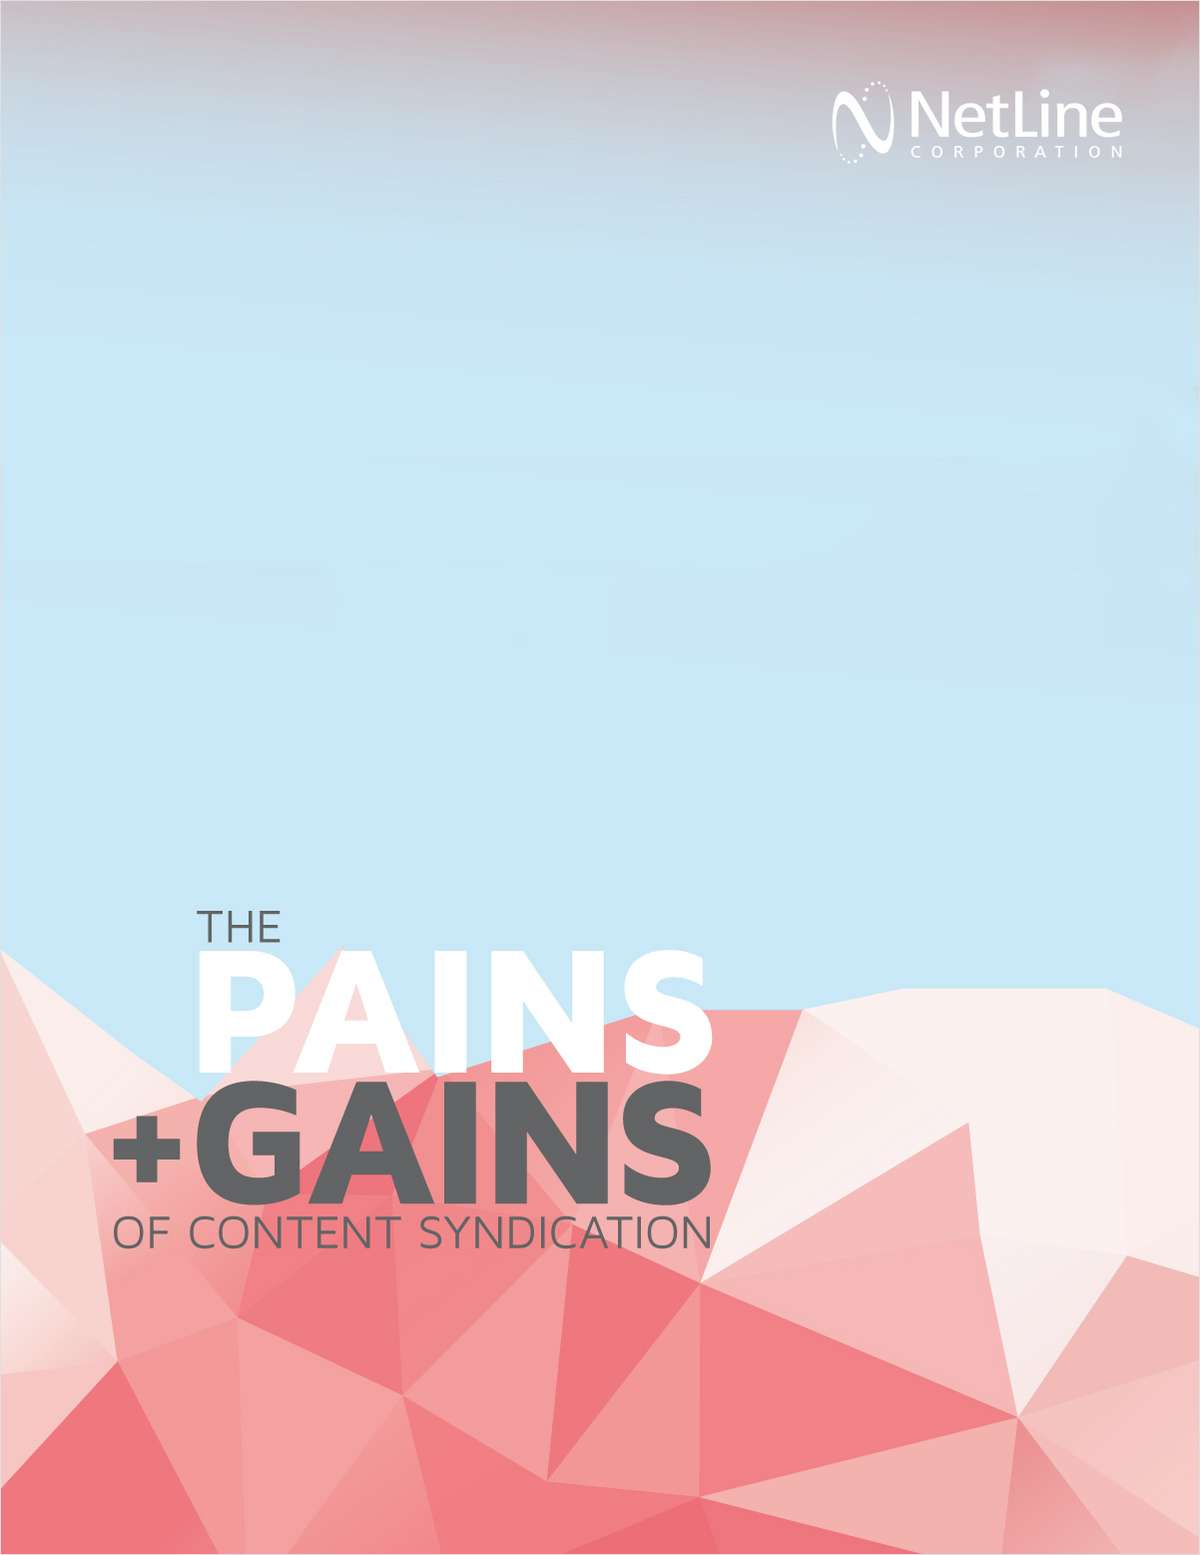 Pains & Gains of Content Syndication